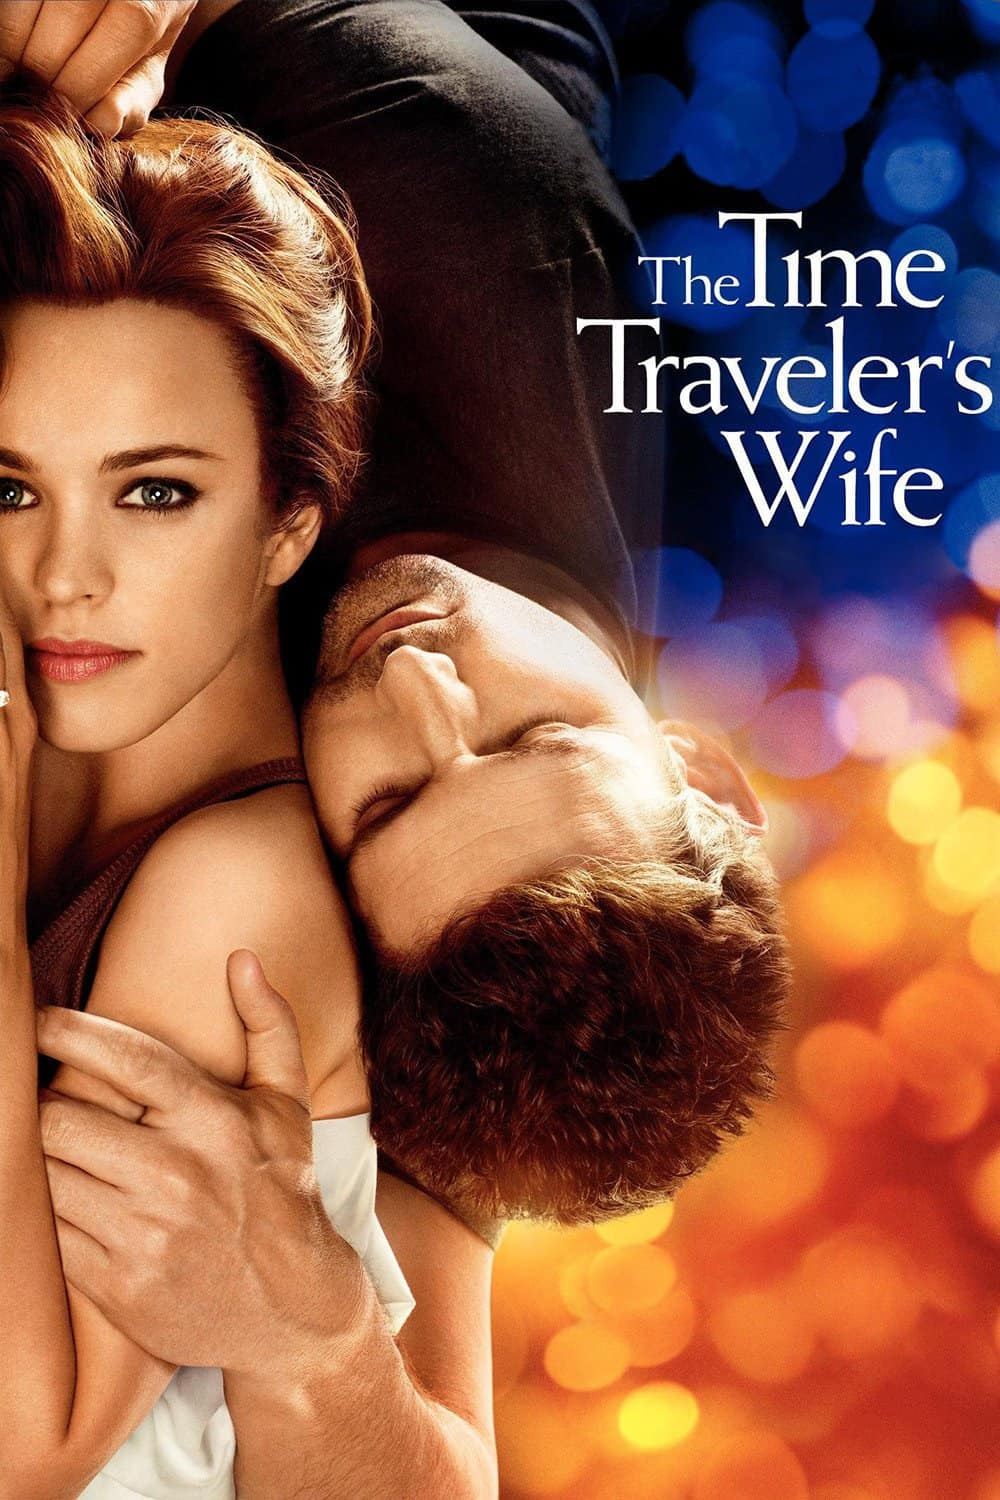 The Time Traveler's Wife, 2009